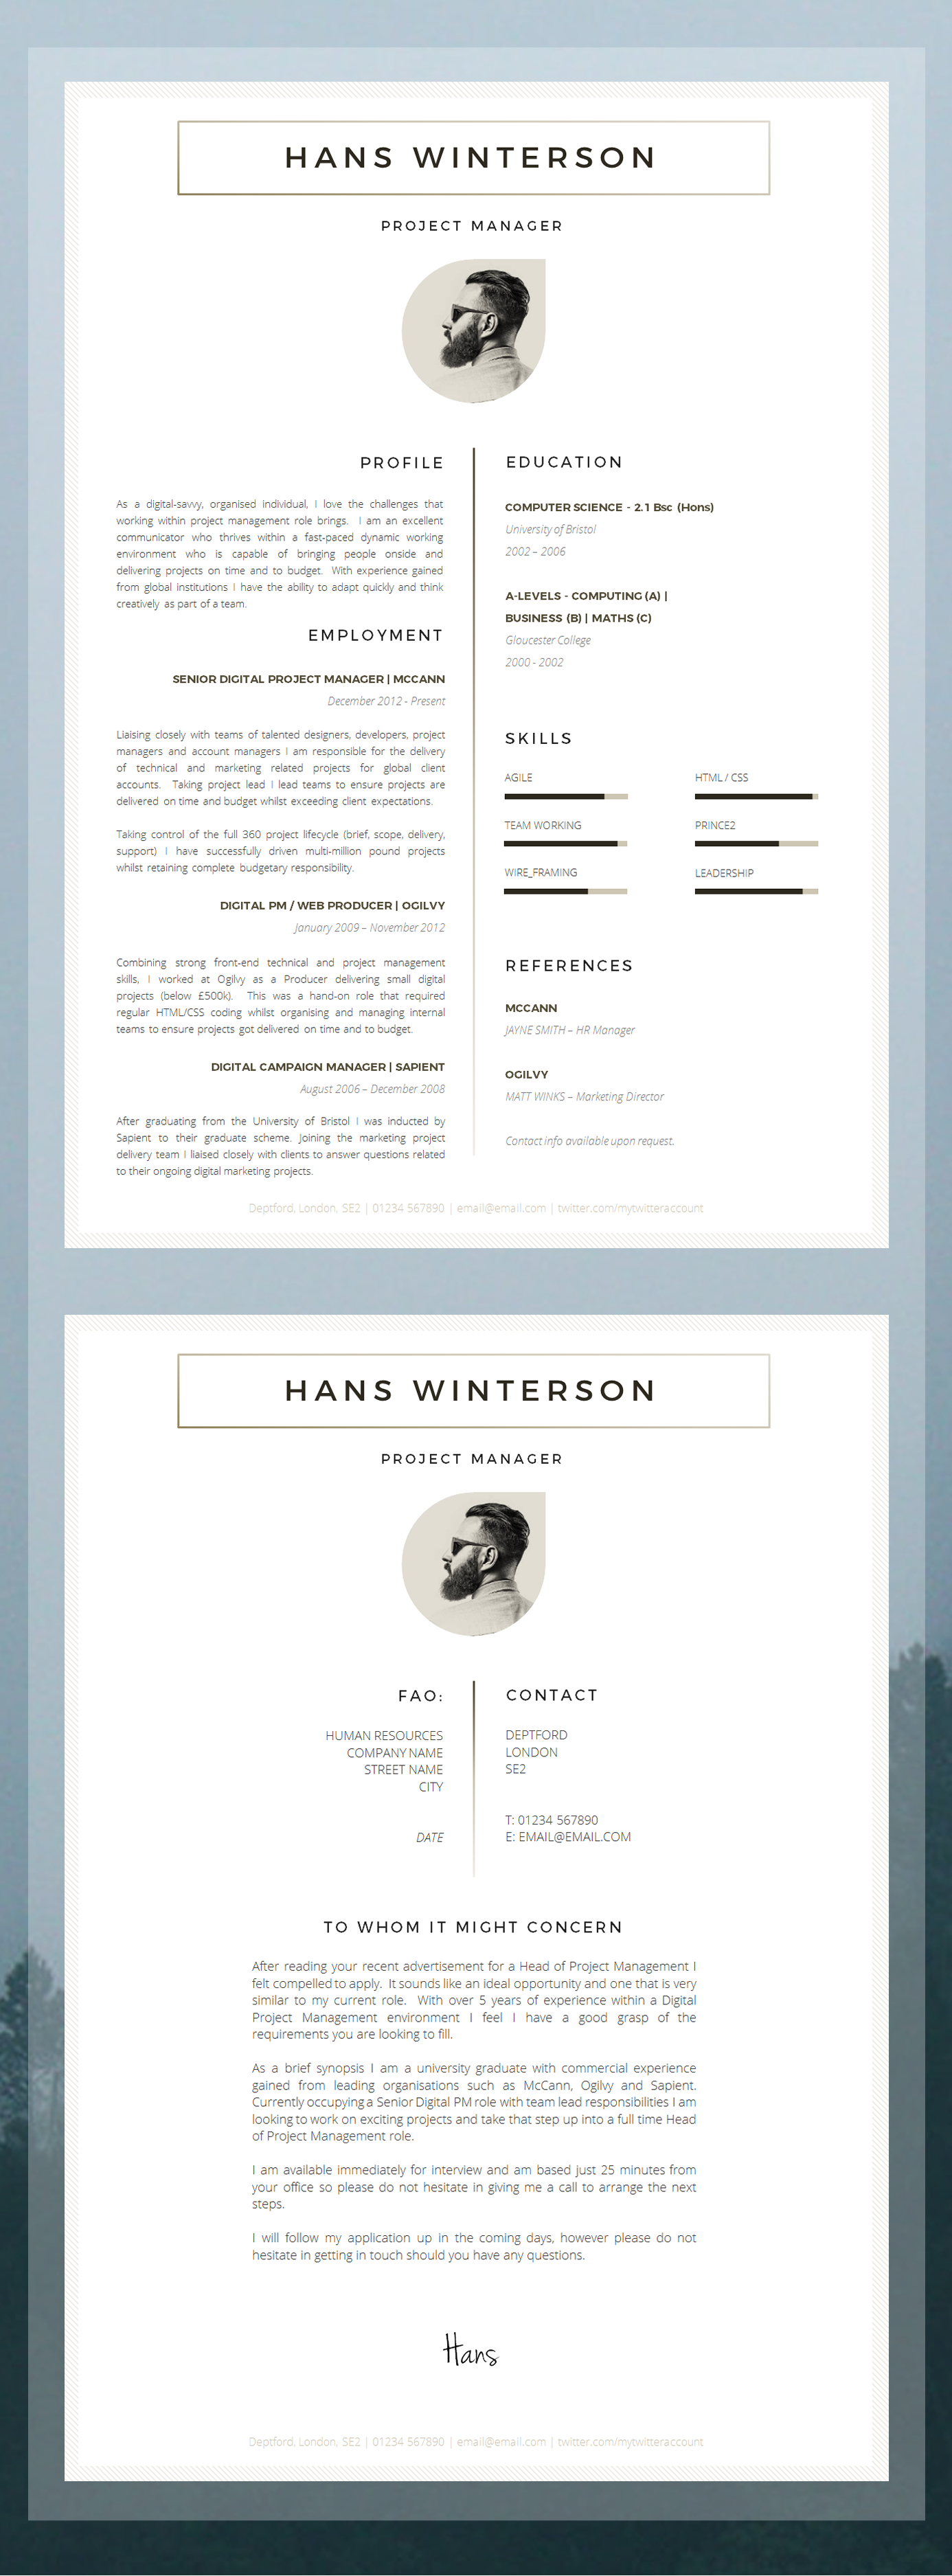 Professional CV Template Download This Resume